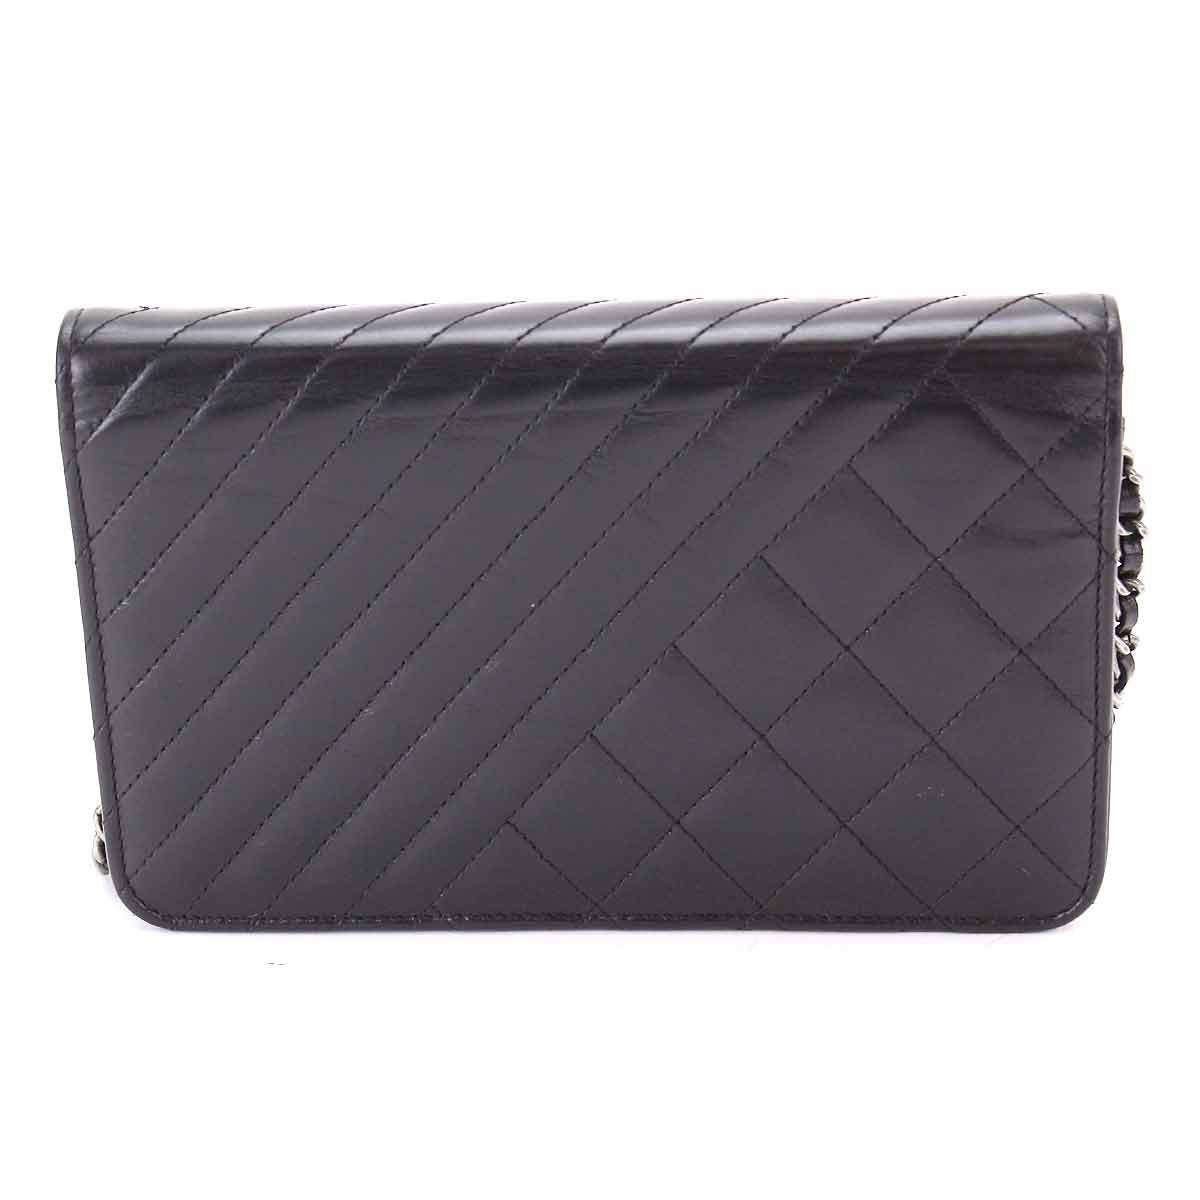 2bd64af78204c2 Details about Auth CHANEL COCO BOY Chain Long Wallet Leather Black A80649  90066197